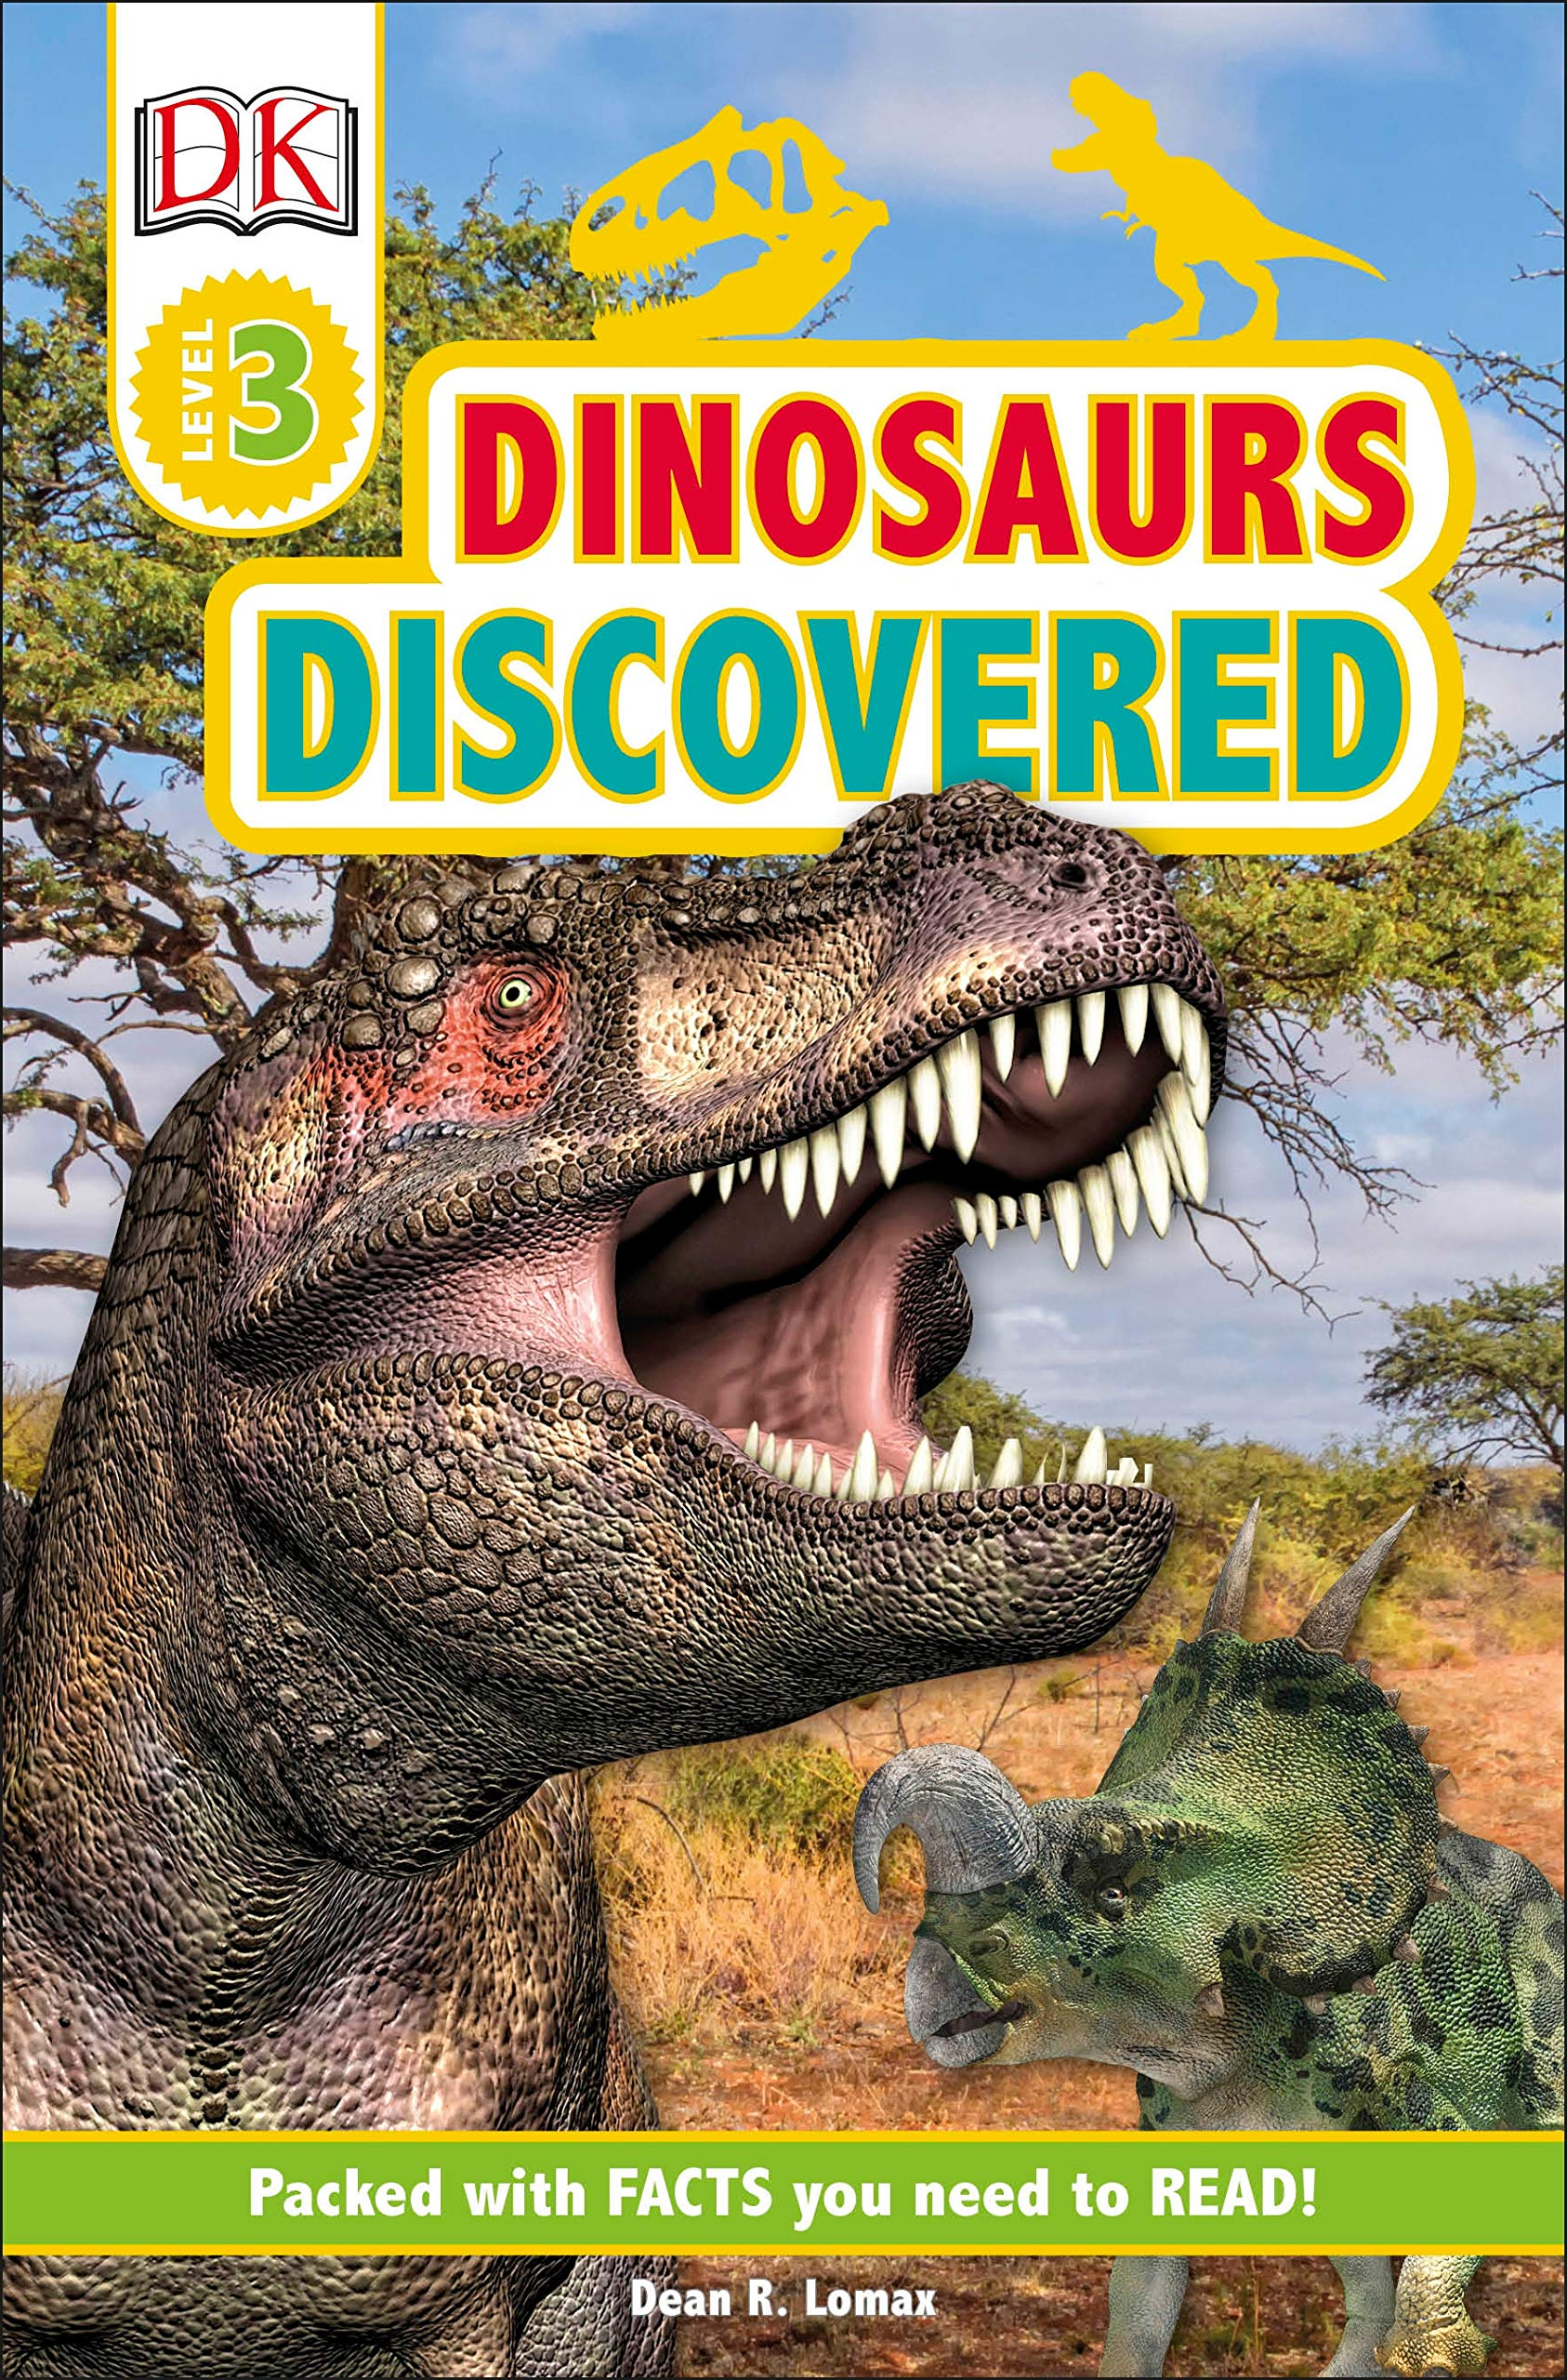 Amazon com: DK Readers Level 3: Dinosaurs Discovered (9781465477293